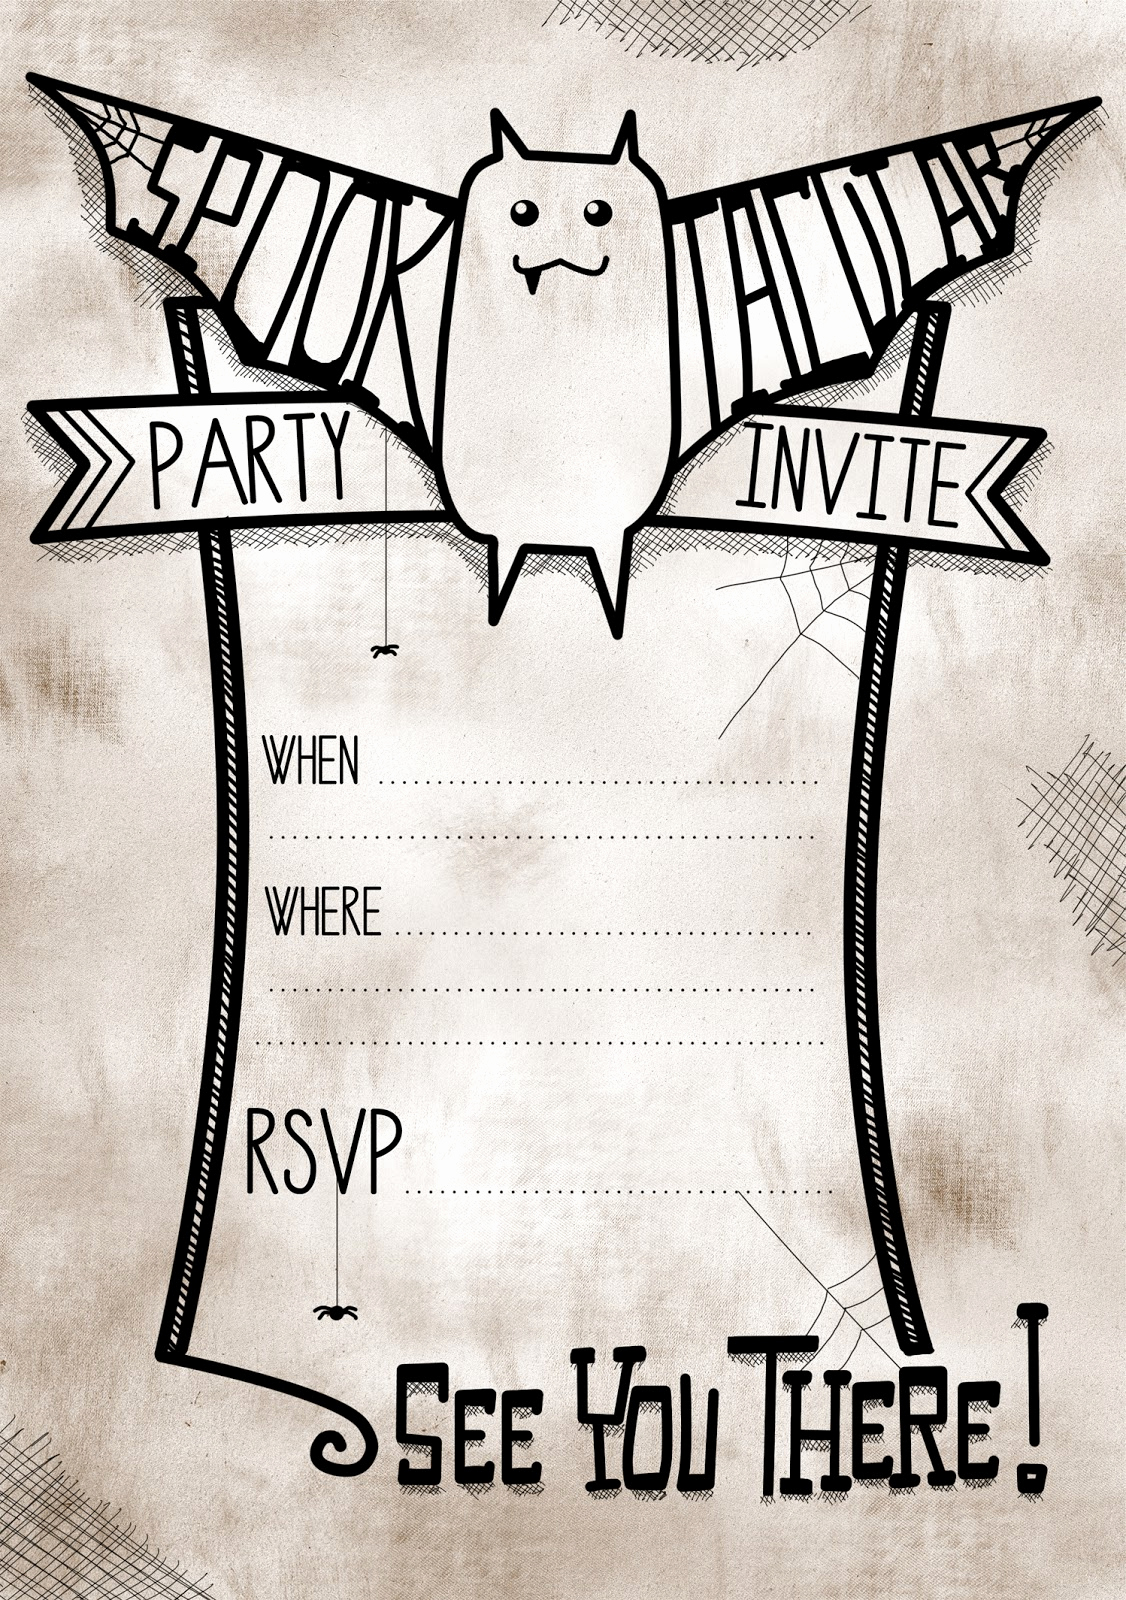 Free Halloween Party Invitation Templates Inspirational Free Printable Spooktacular Party Invites for Halloween